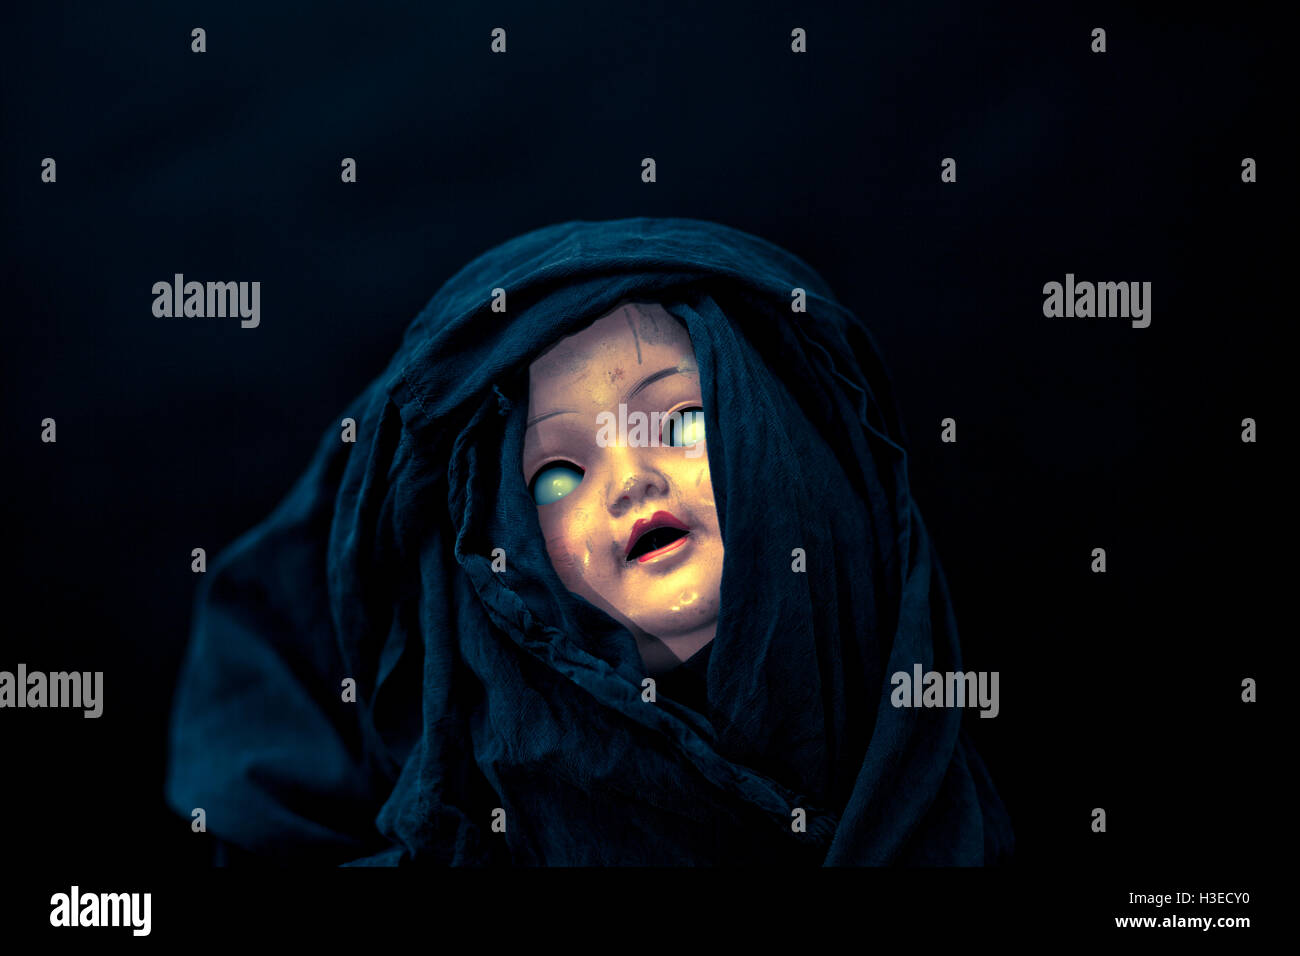 Creepy doll face Photo Stock